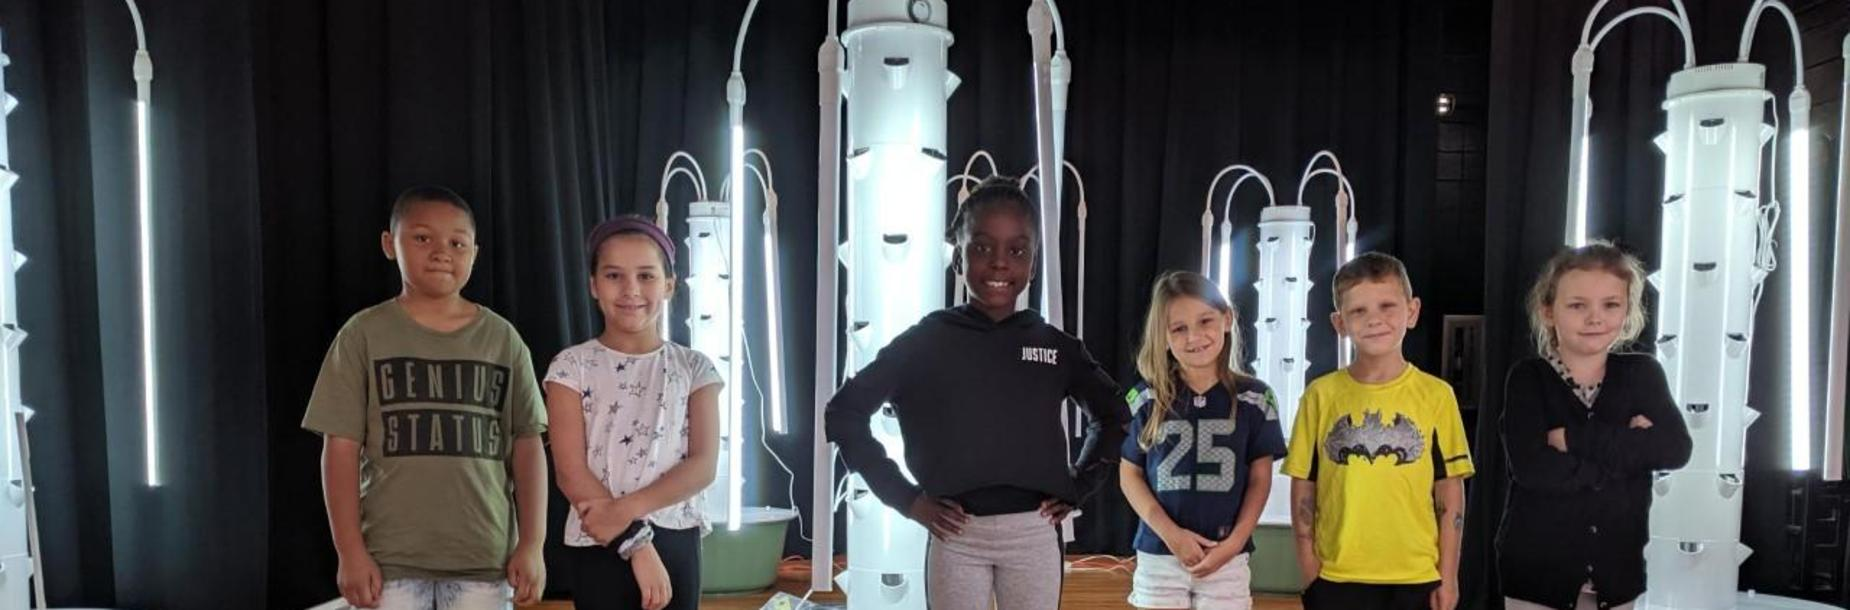 2nd grade students with Hydroponics towers.